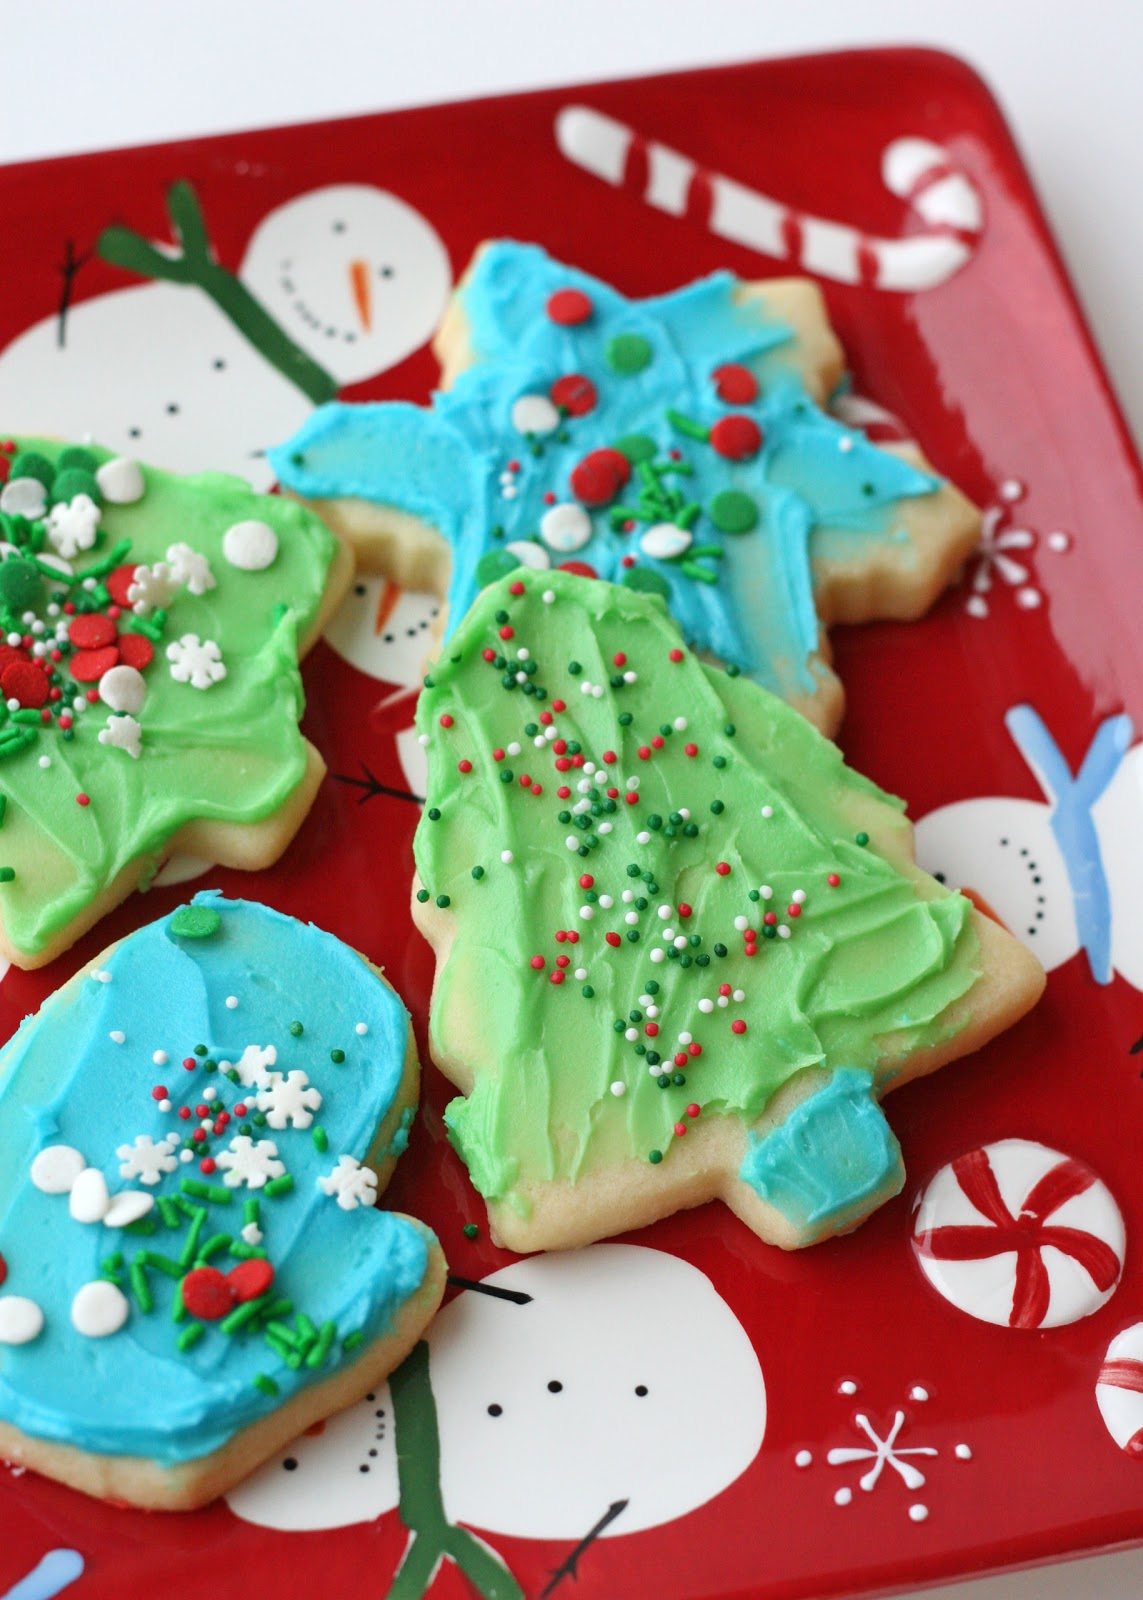 Cookie Decorating Kits For Kids